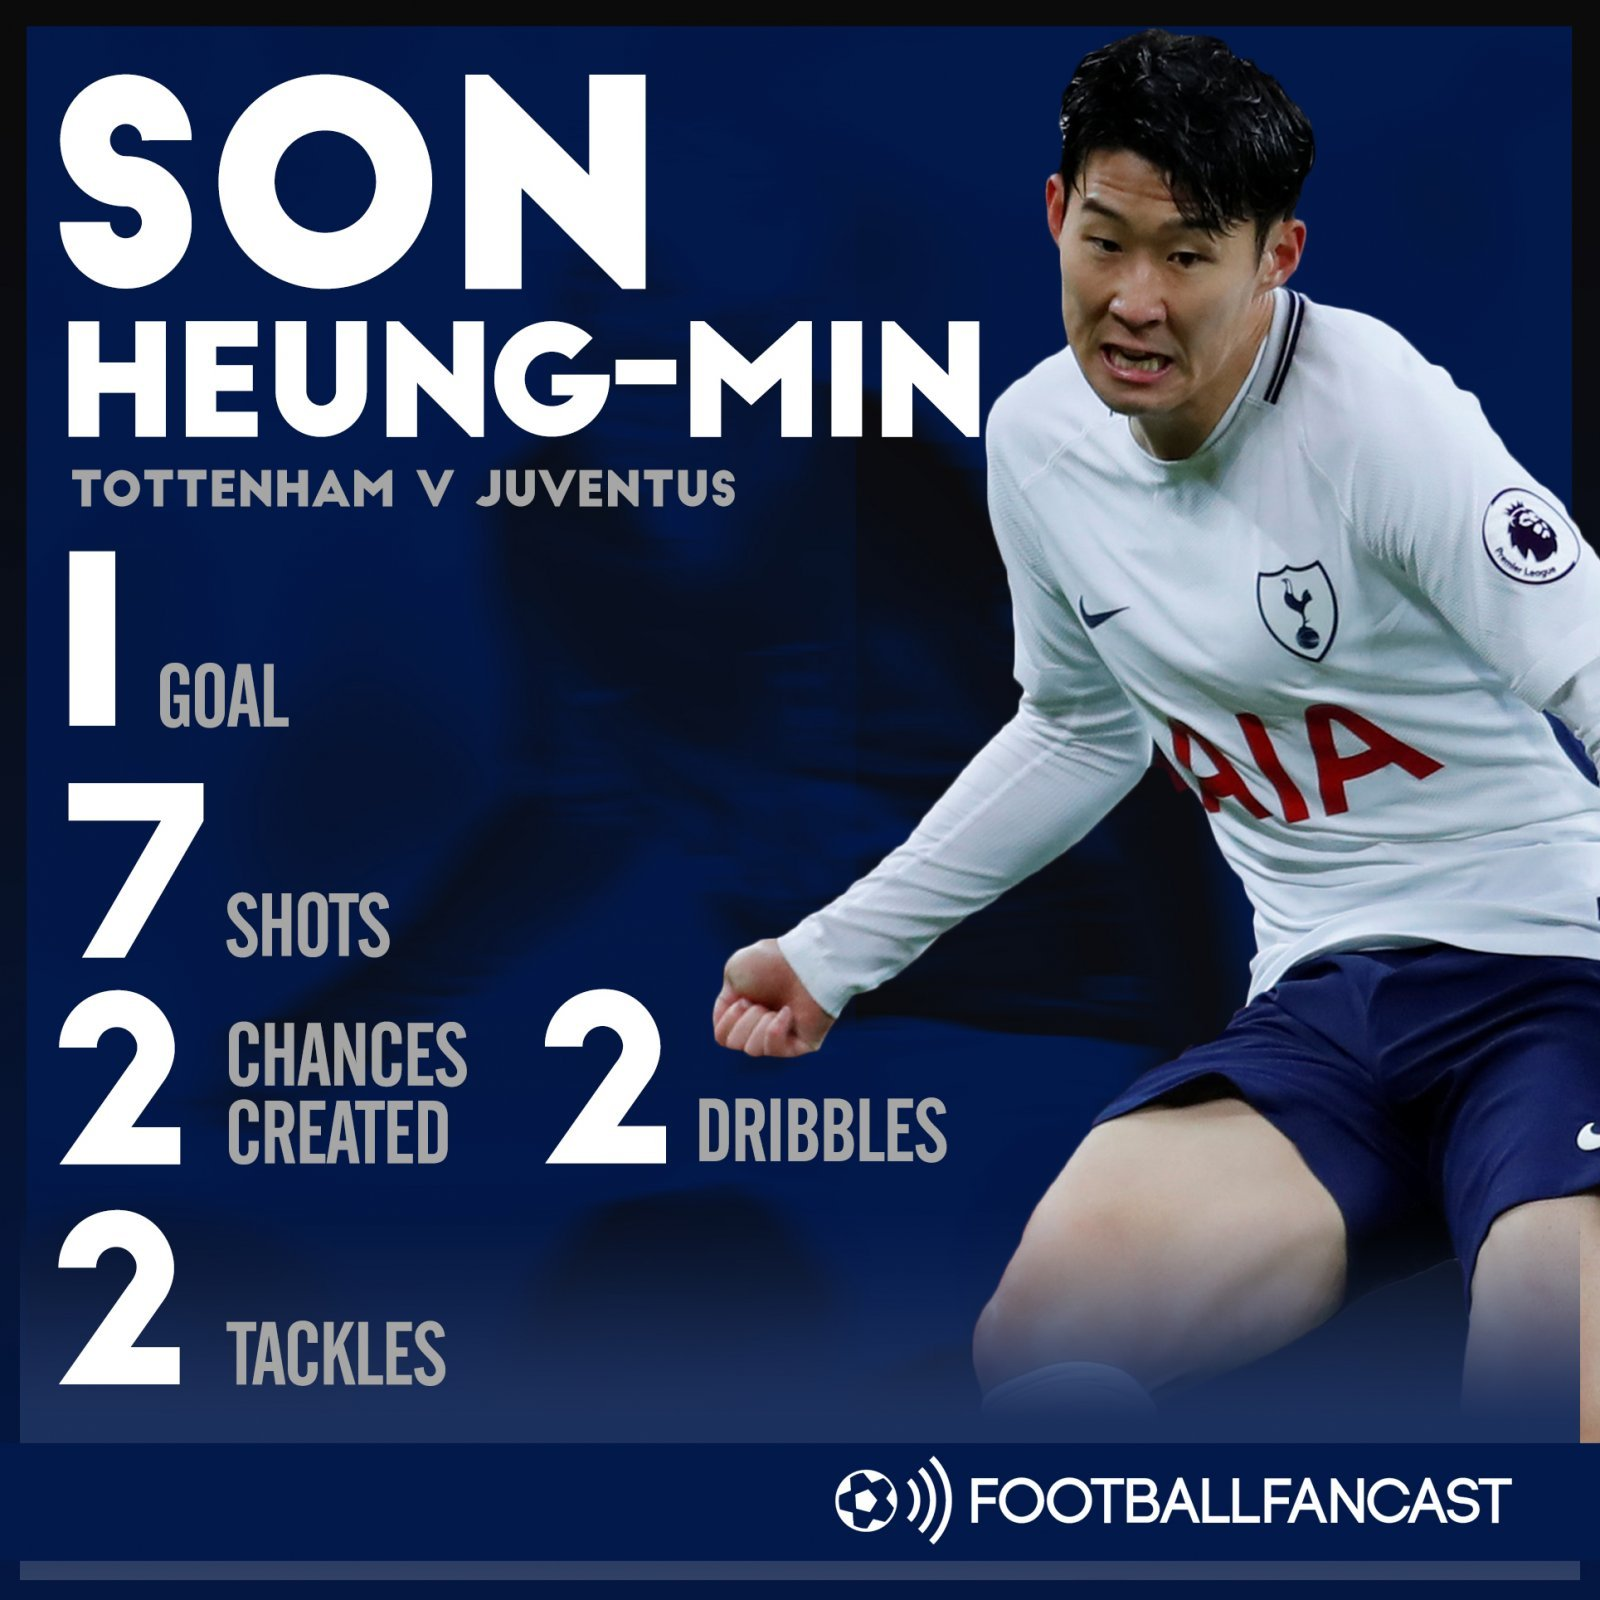 Heung-min Son's stats vs Juventus